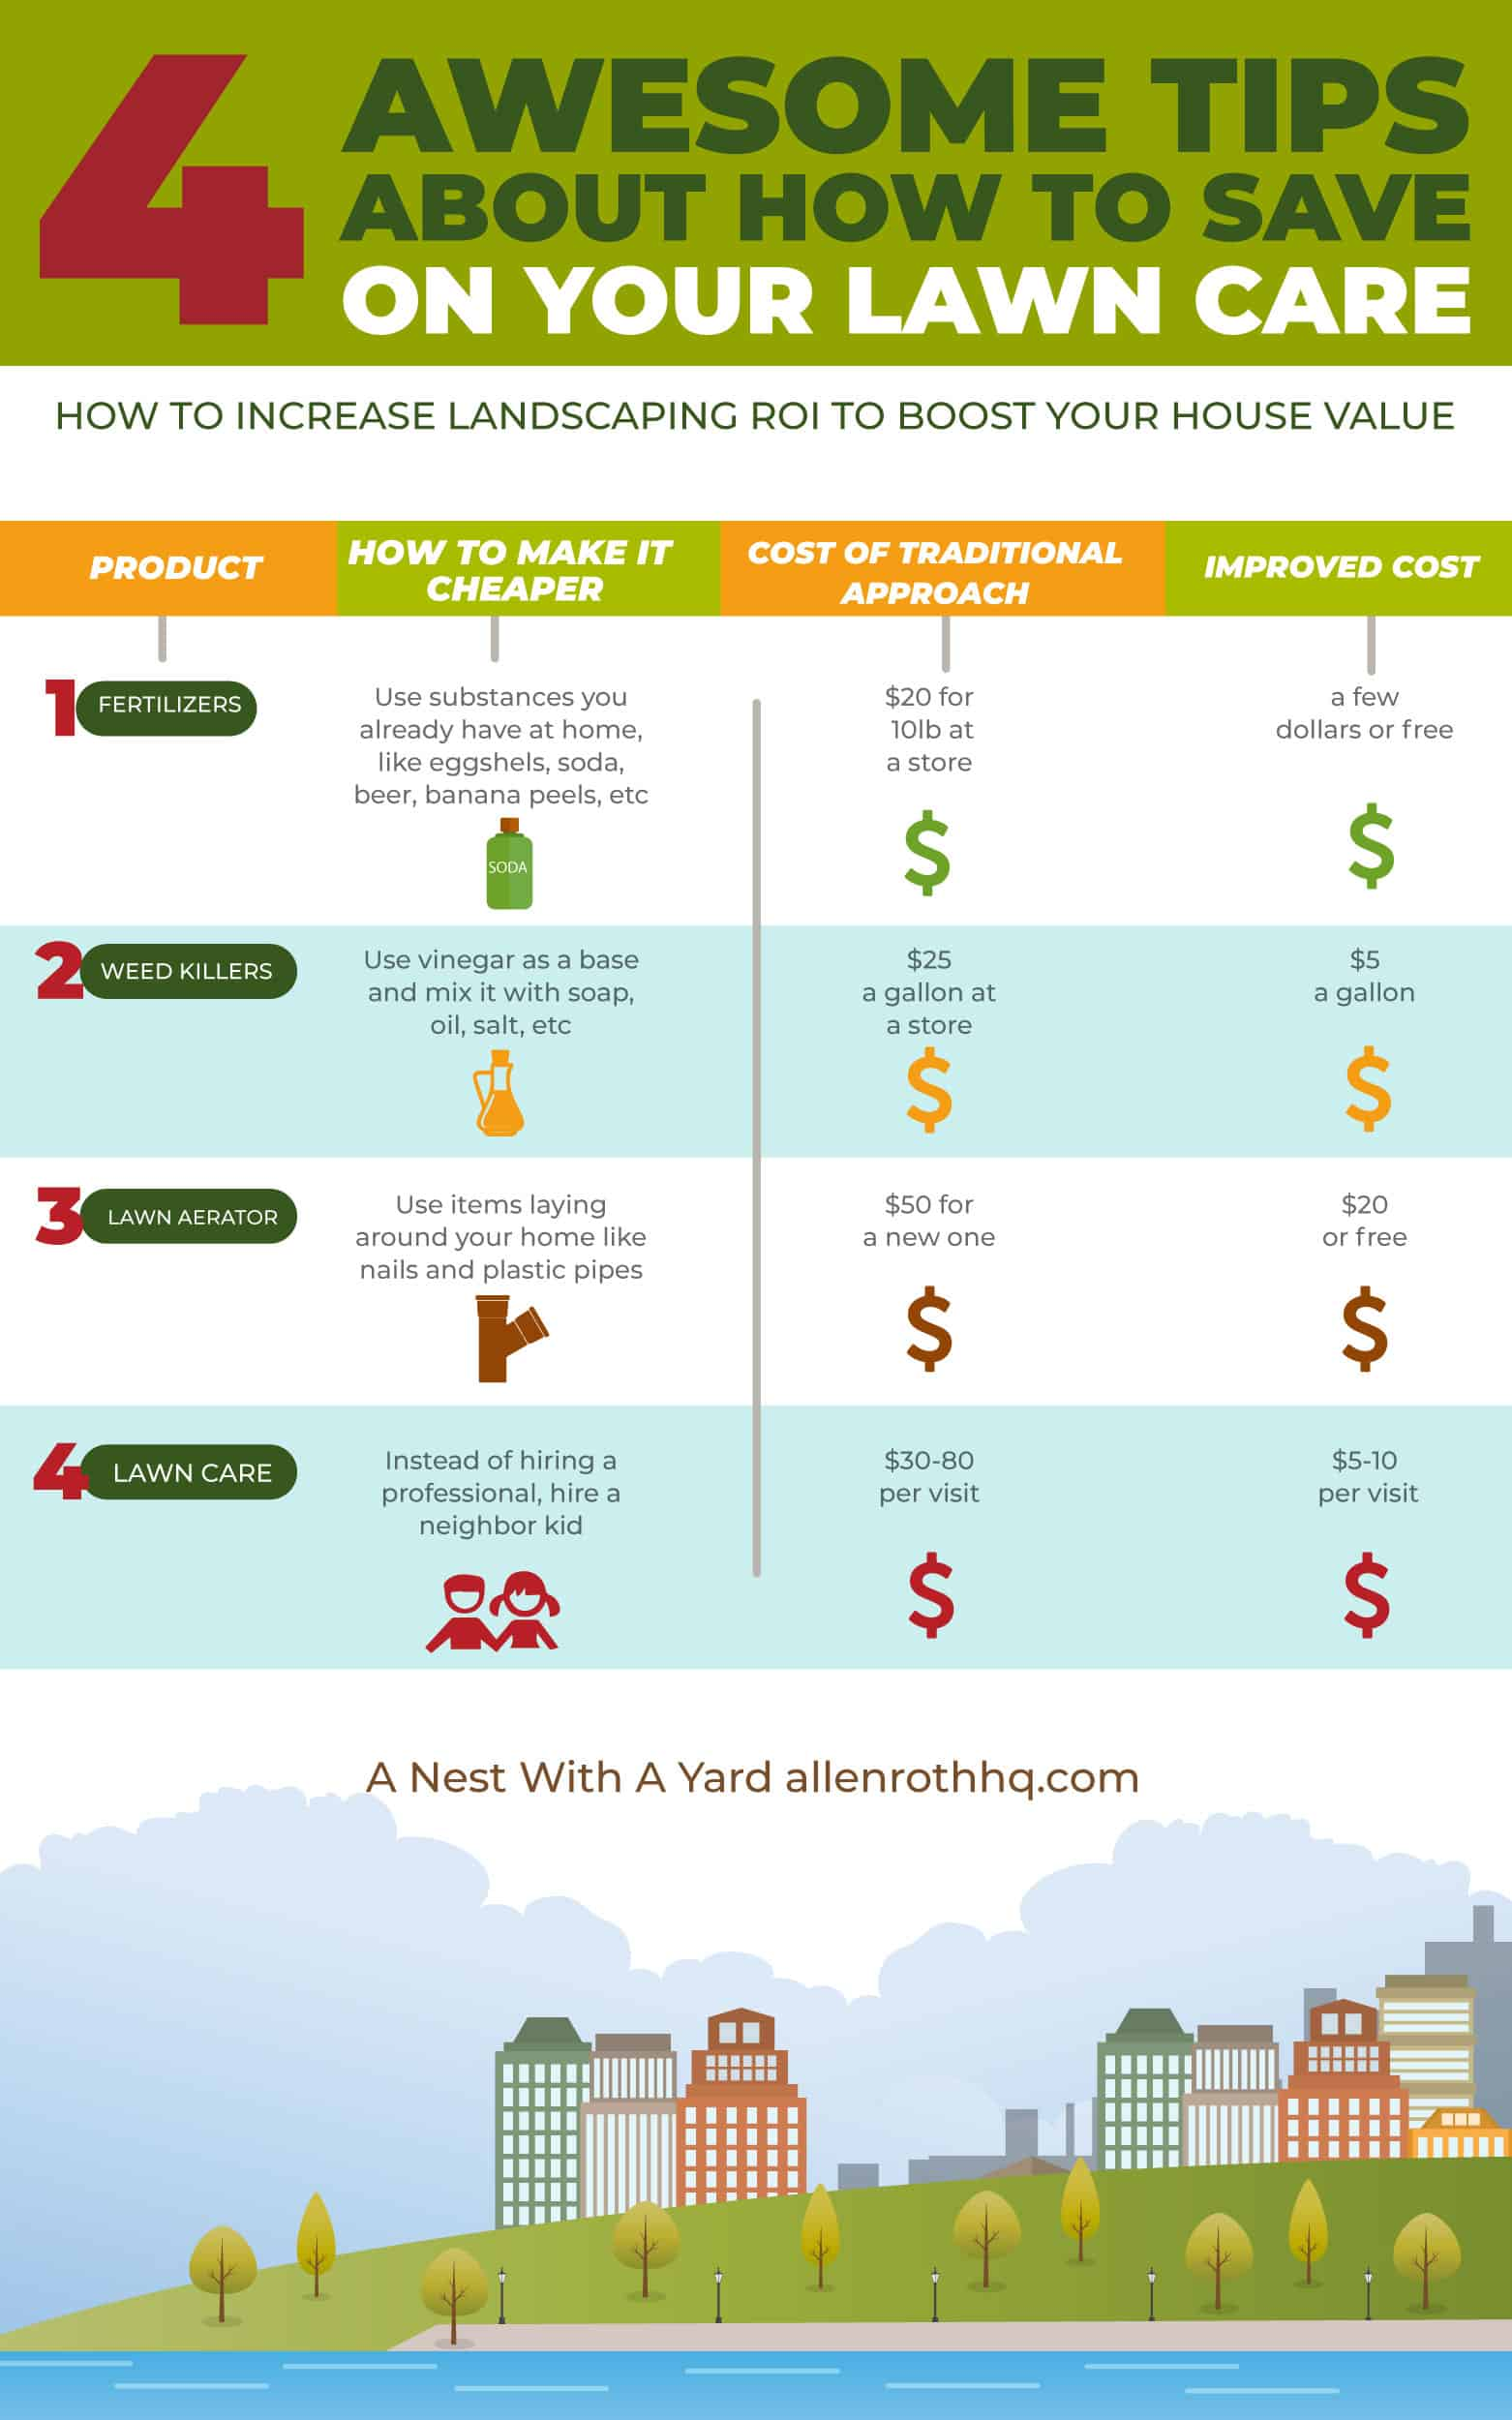 How much you can save on lawn care with homemade solutions #Infographic #lawn #cheapLandscapingIdeas #backyard #outdoor #backyardGarden #garden #gardening #backyardLandscaping #backyardLandscapingIdeas #landscaping